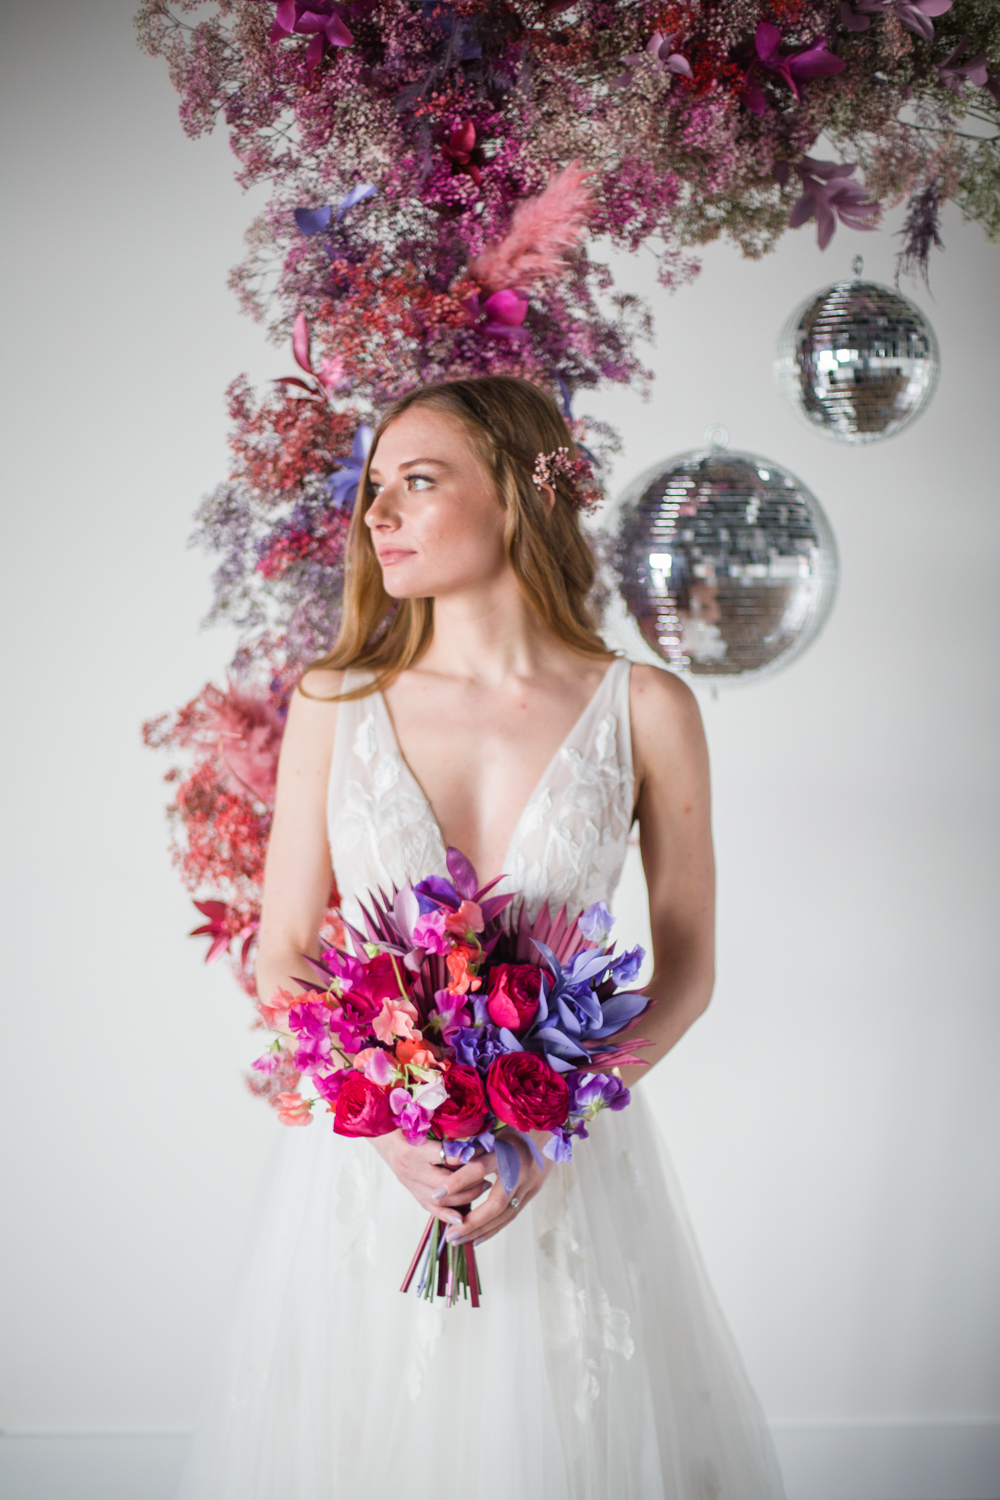 This bright wedding shoot was created to inspire couple to rock bright colors they love and go totally 'them' at the wedding